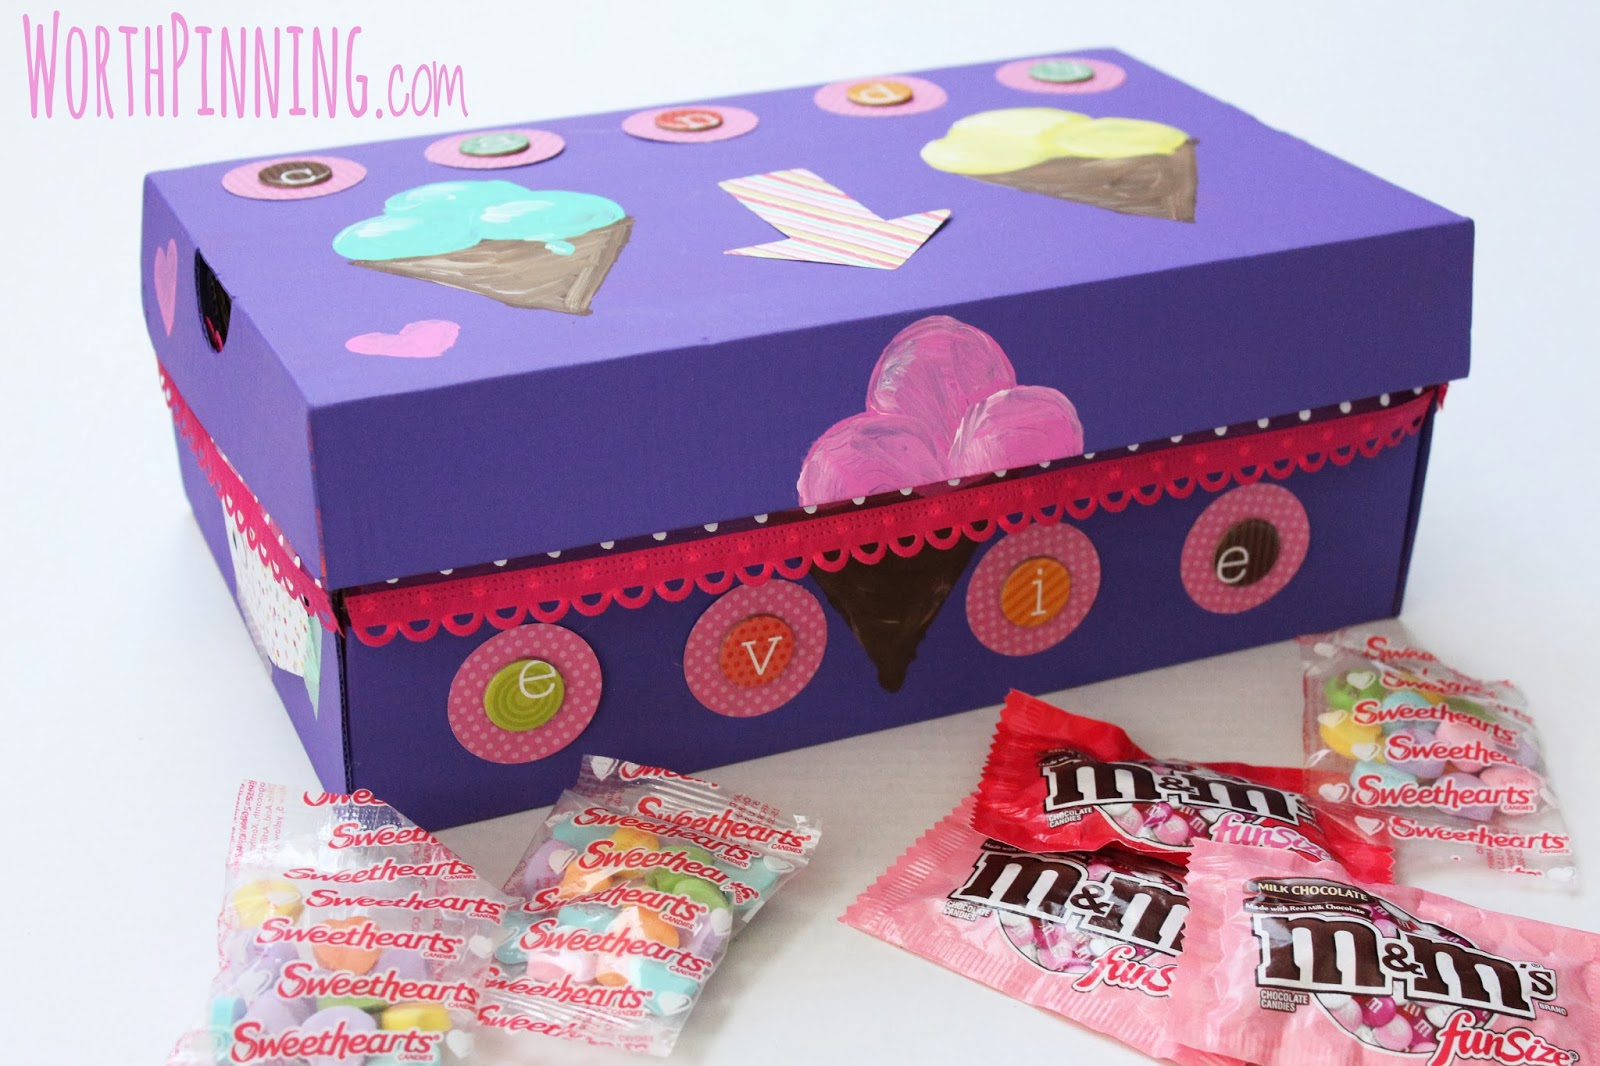 Worth It Events Girl And Boy Valentine S Day Box With Apple Barrel